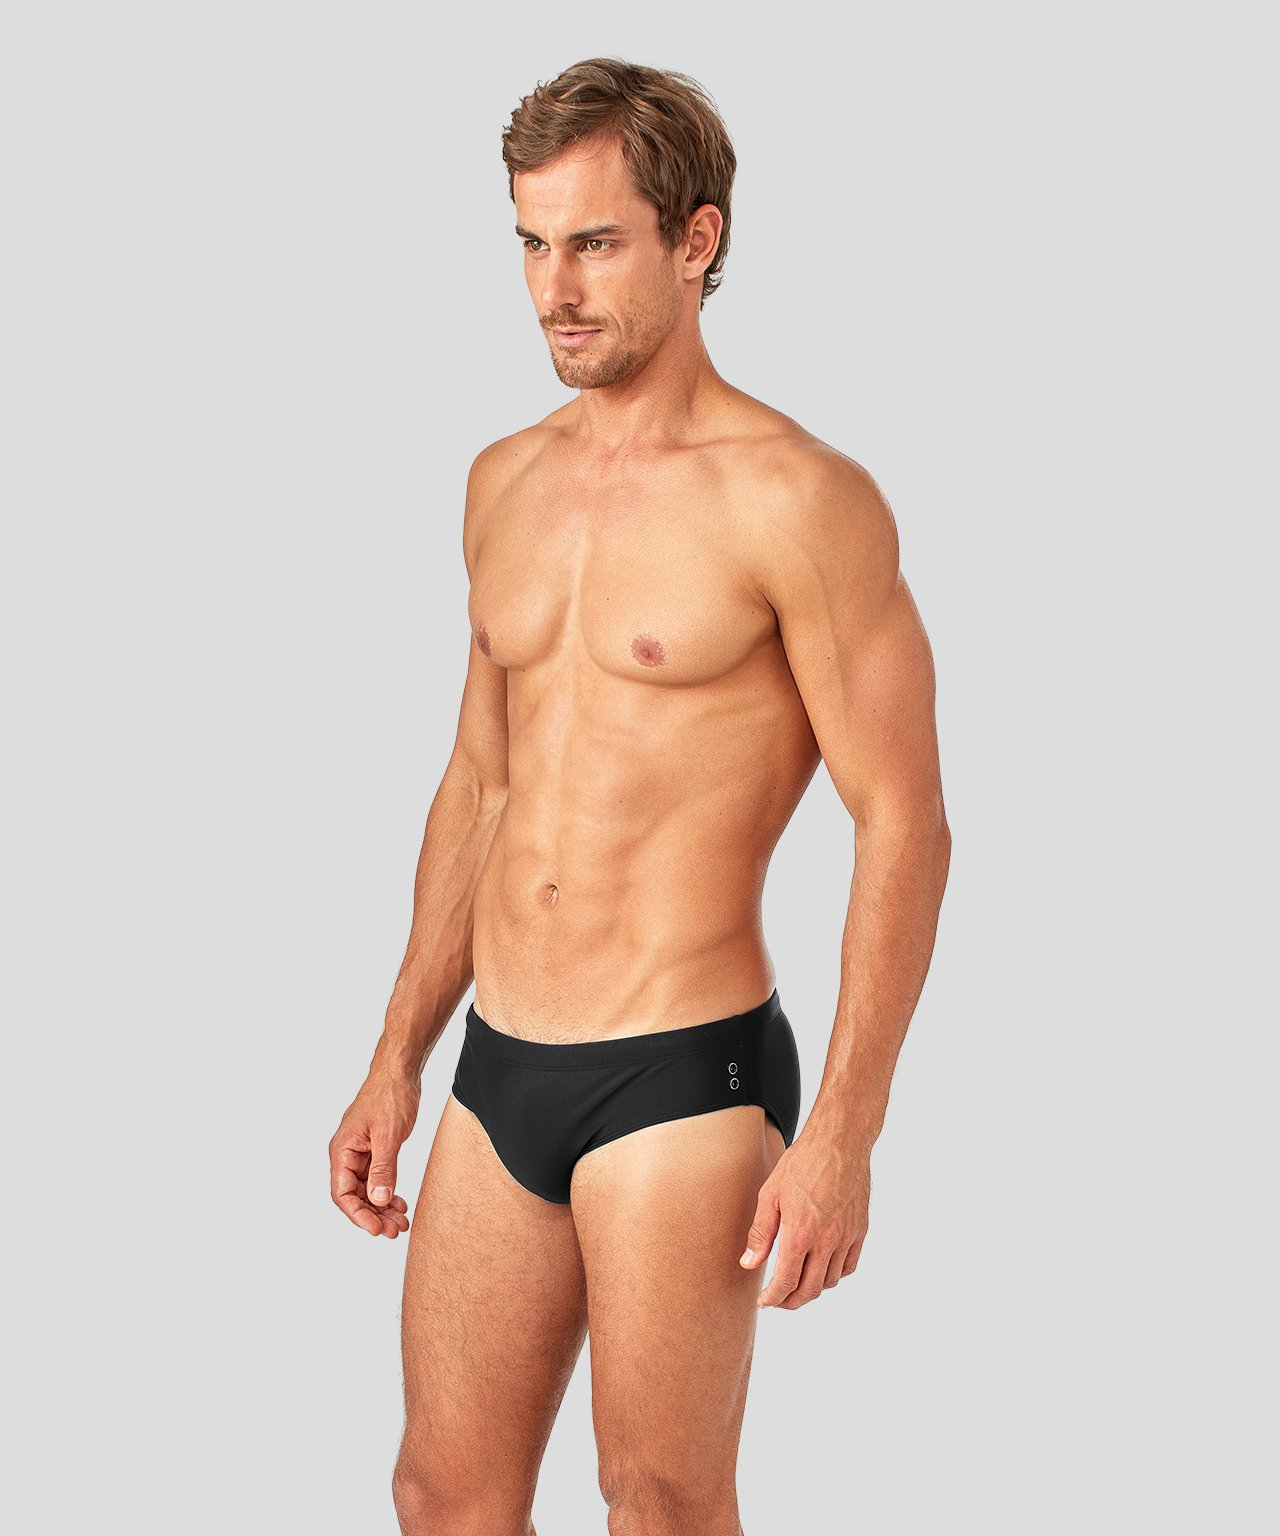 Ron-Dorff-Swim-Briefs